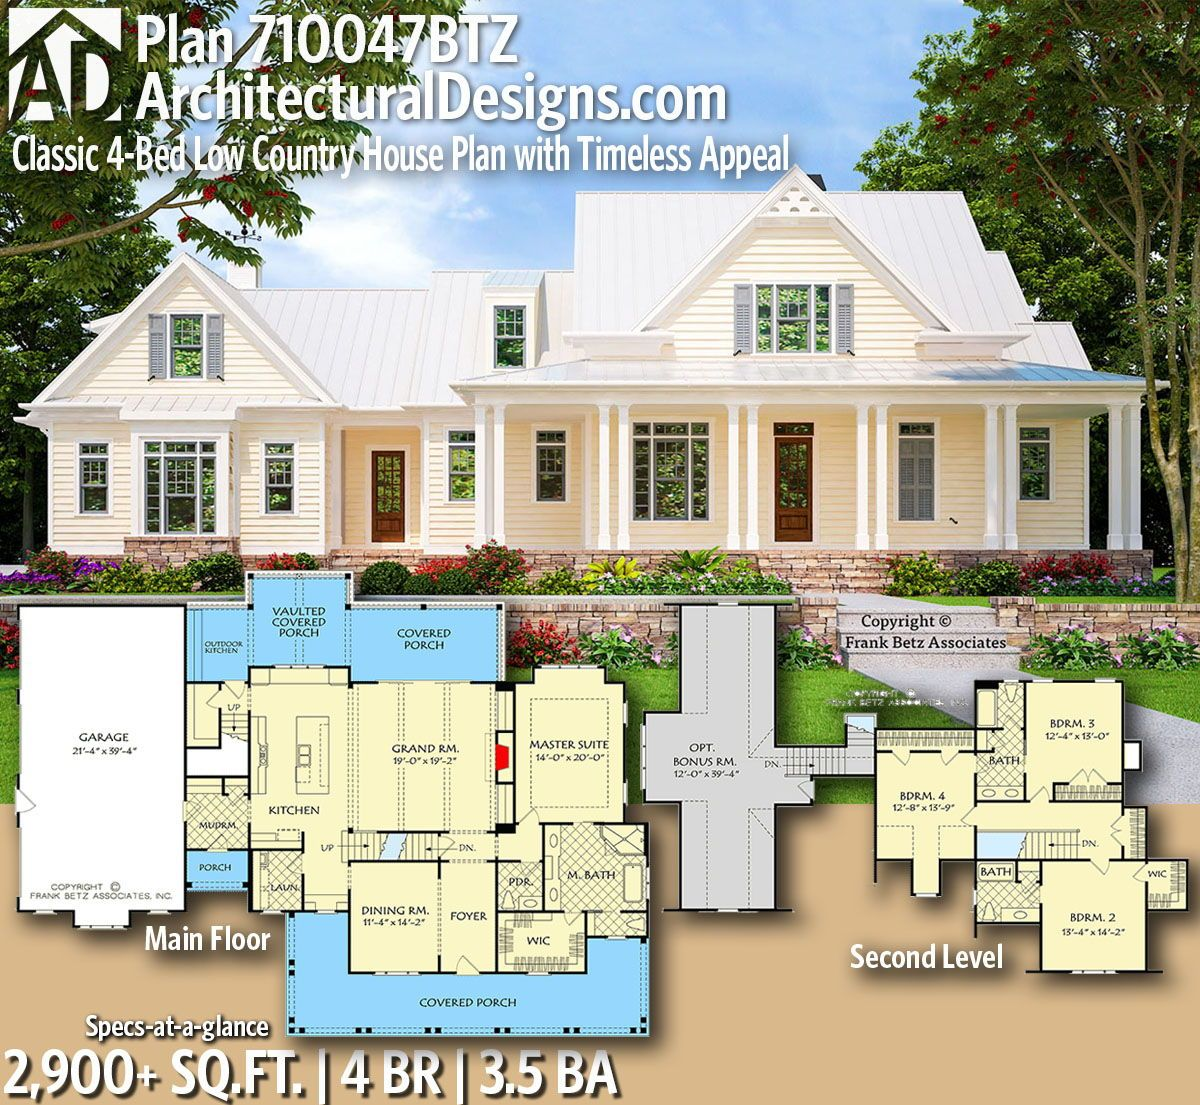 Photo of Plan 710047BTZ: Classic 4-Bed Low Country House Plan with Timeless Appeal